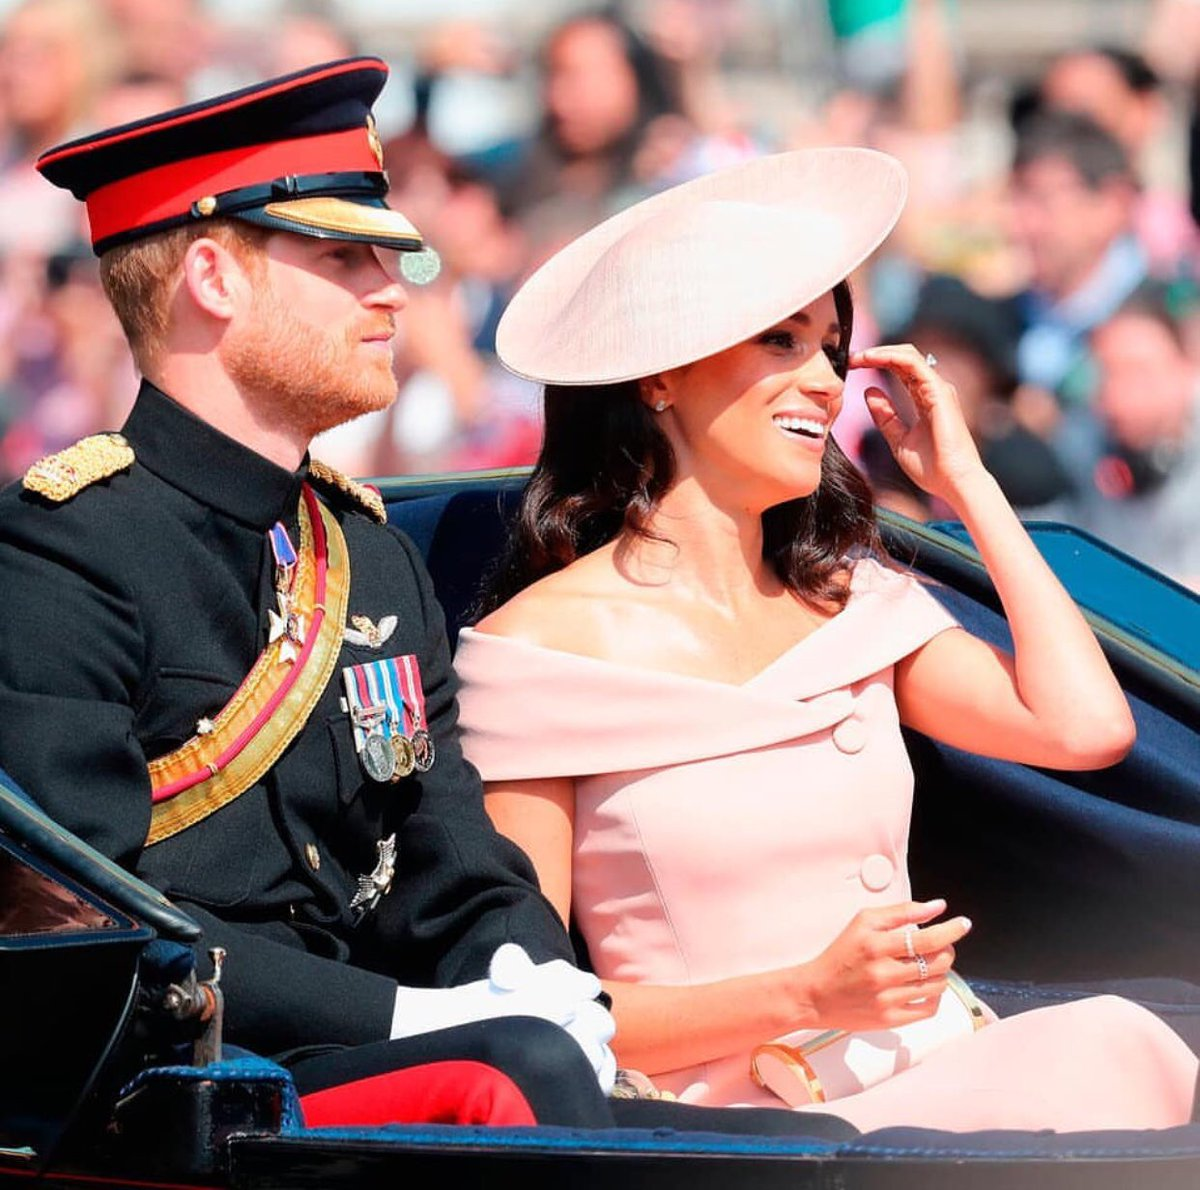 😍😍😍 Meghan & Harry at the Queen's 92nd birthday celebrations #MeghanMarkle #PrinceHarry https://t.co/OhUEPPXzHS